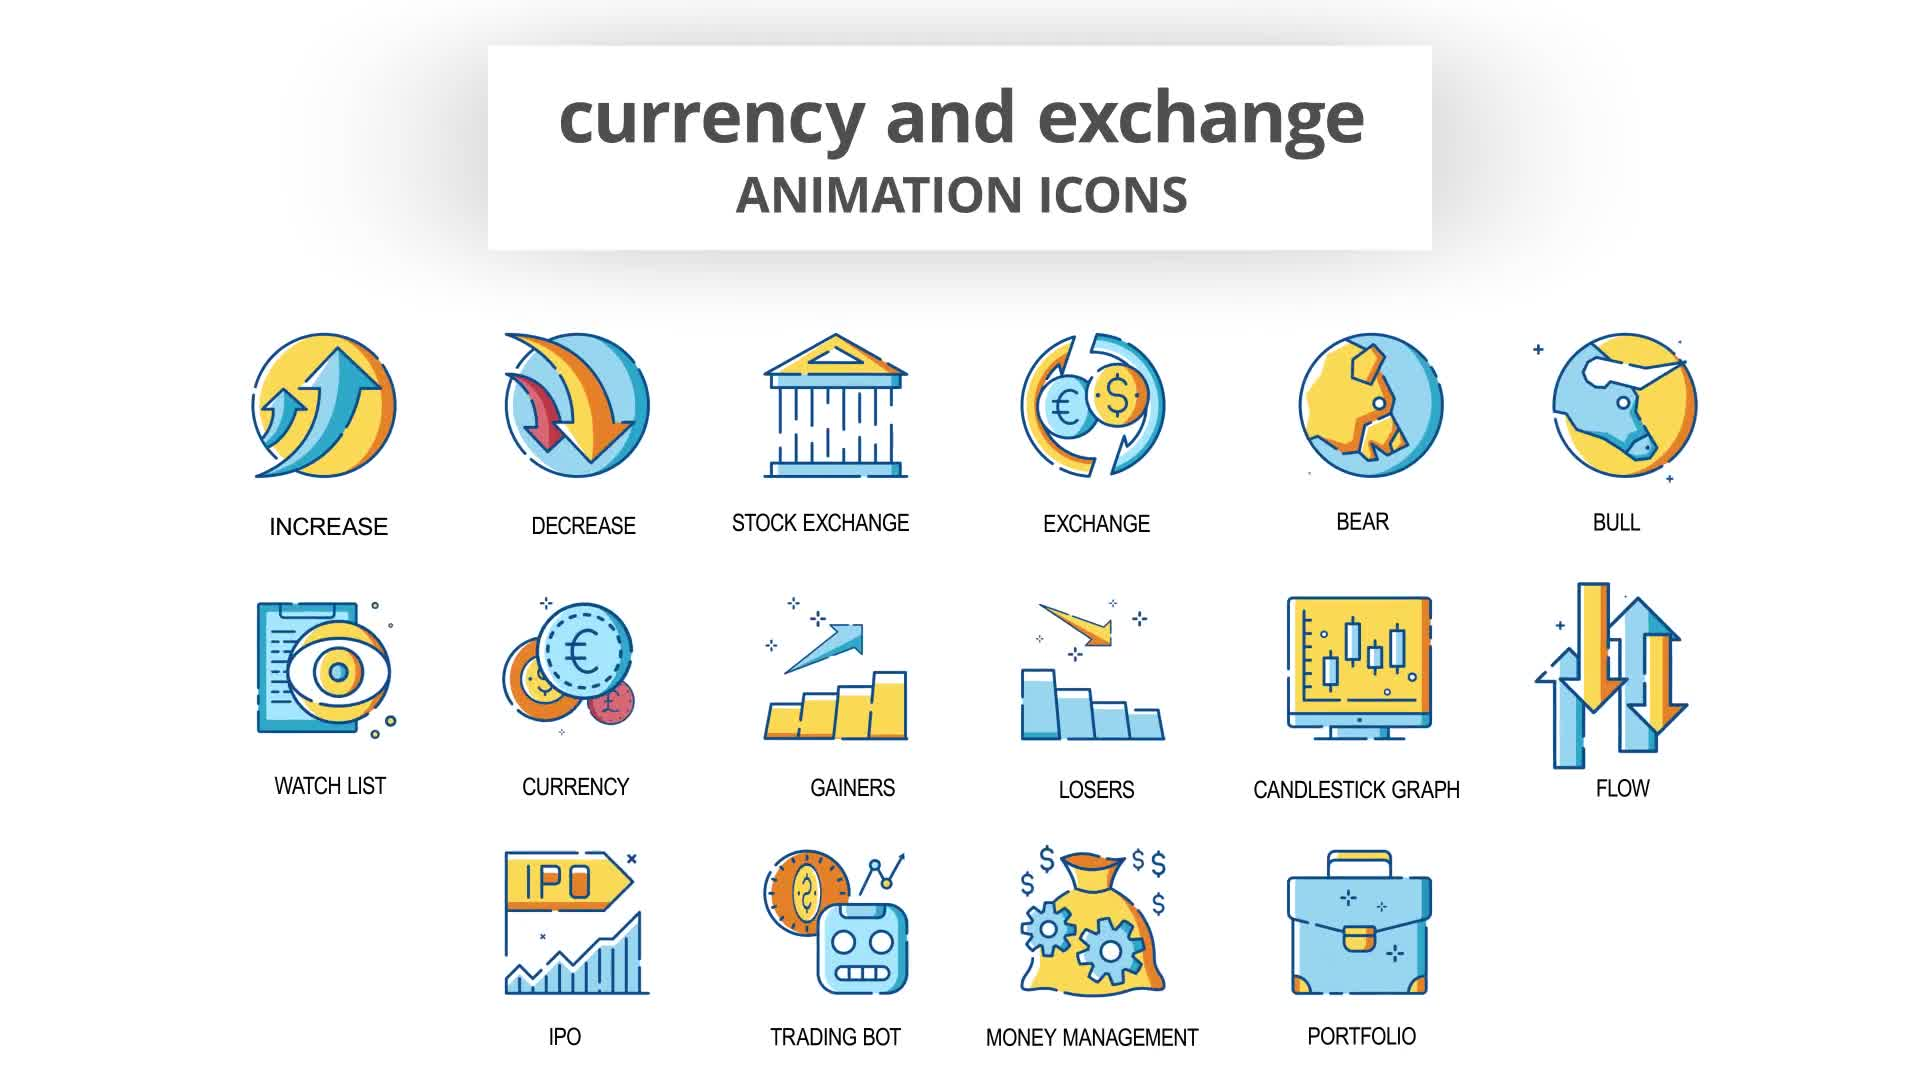 Currency & Exchange Animation Icons Videohive 30260825 After Effects Image 8